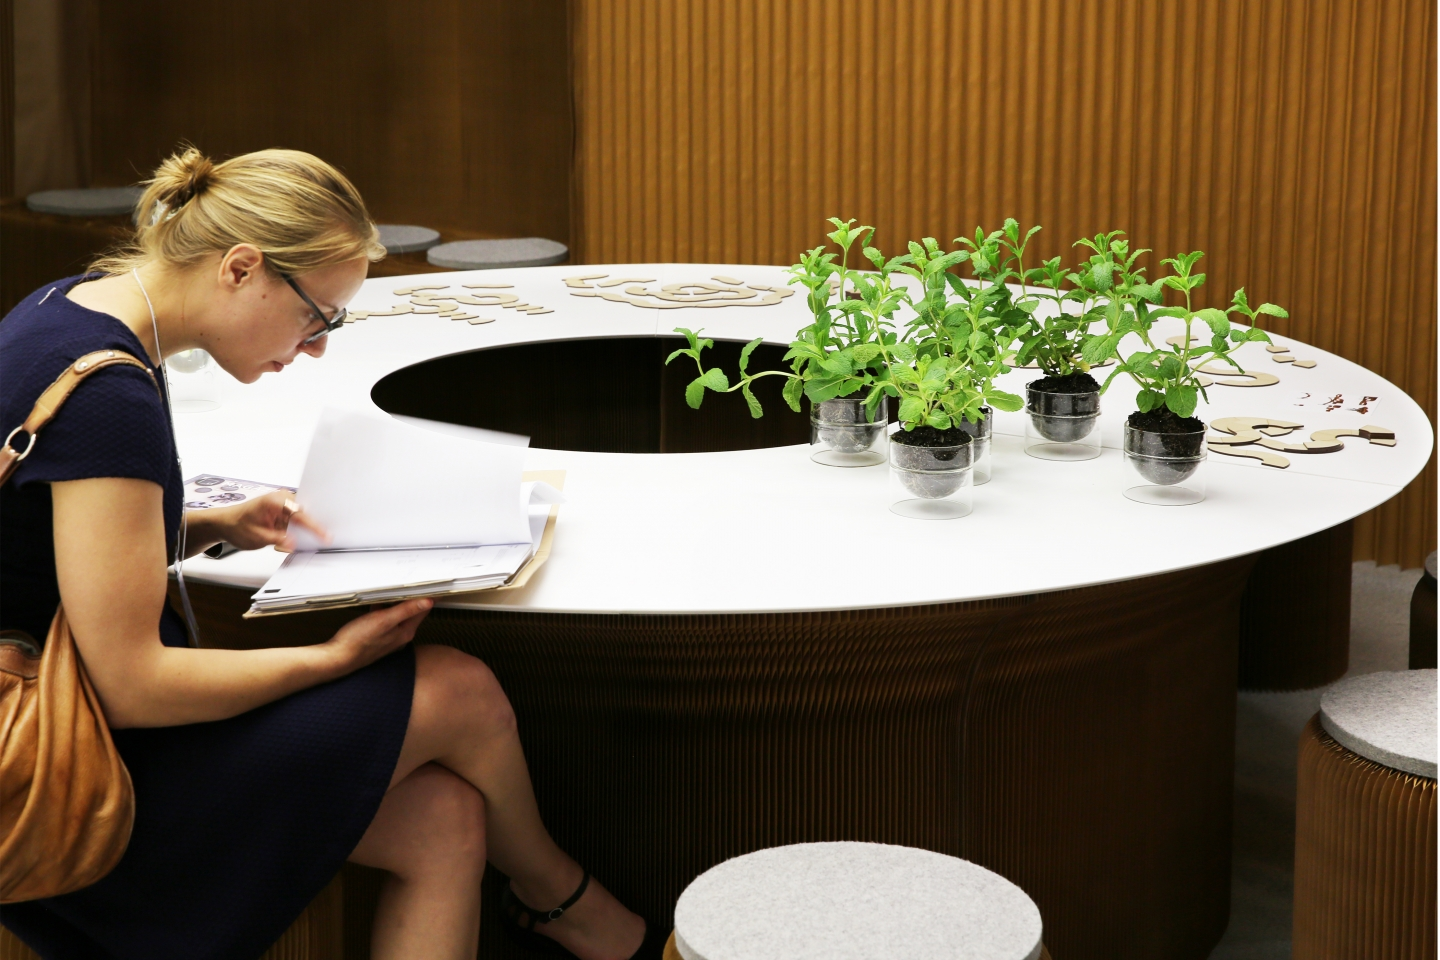 a woman reviews notes while sitting at a cantilever table with wedge tops.